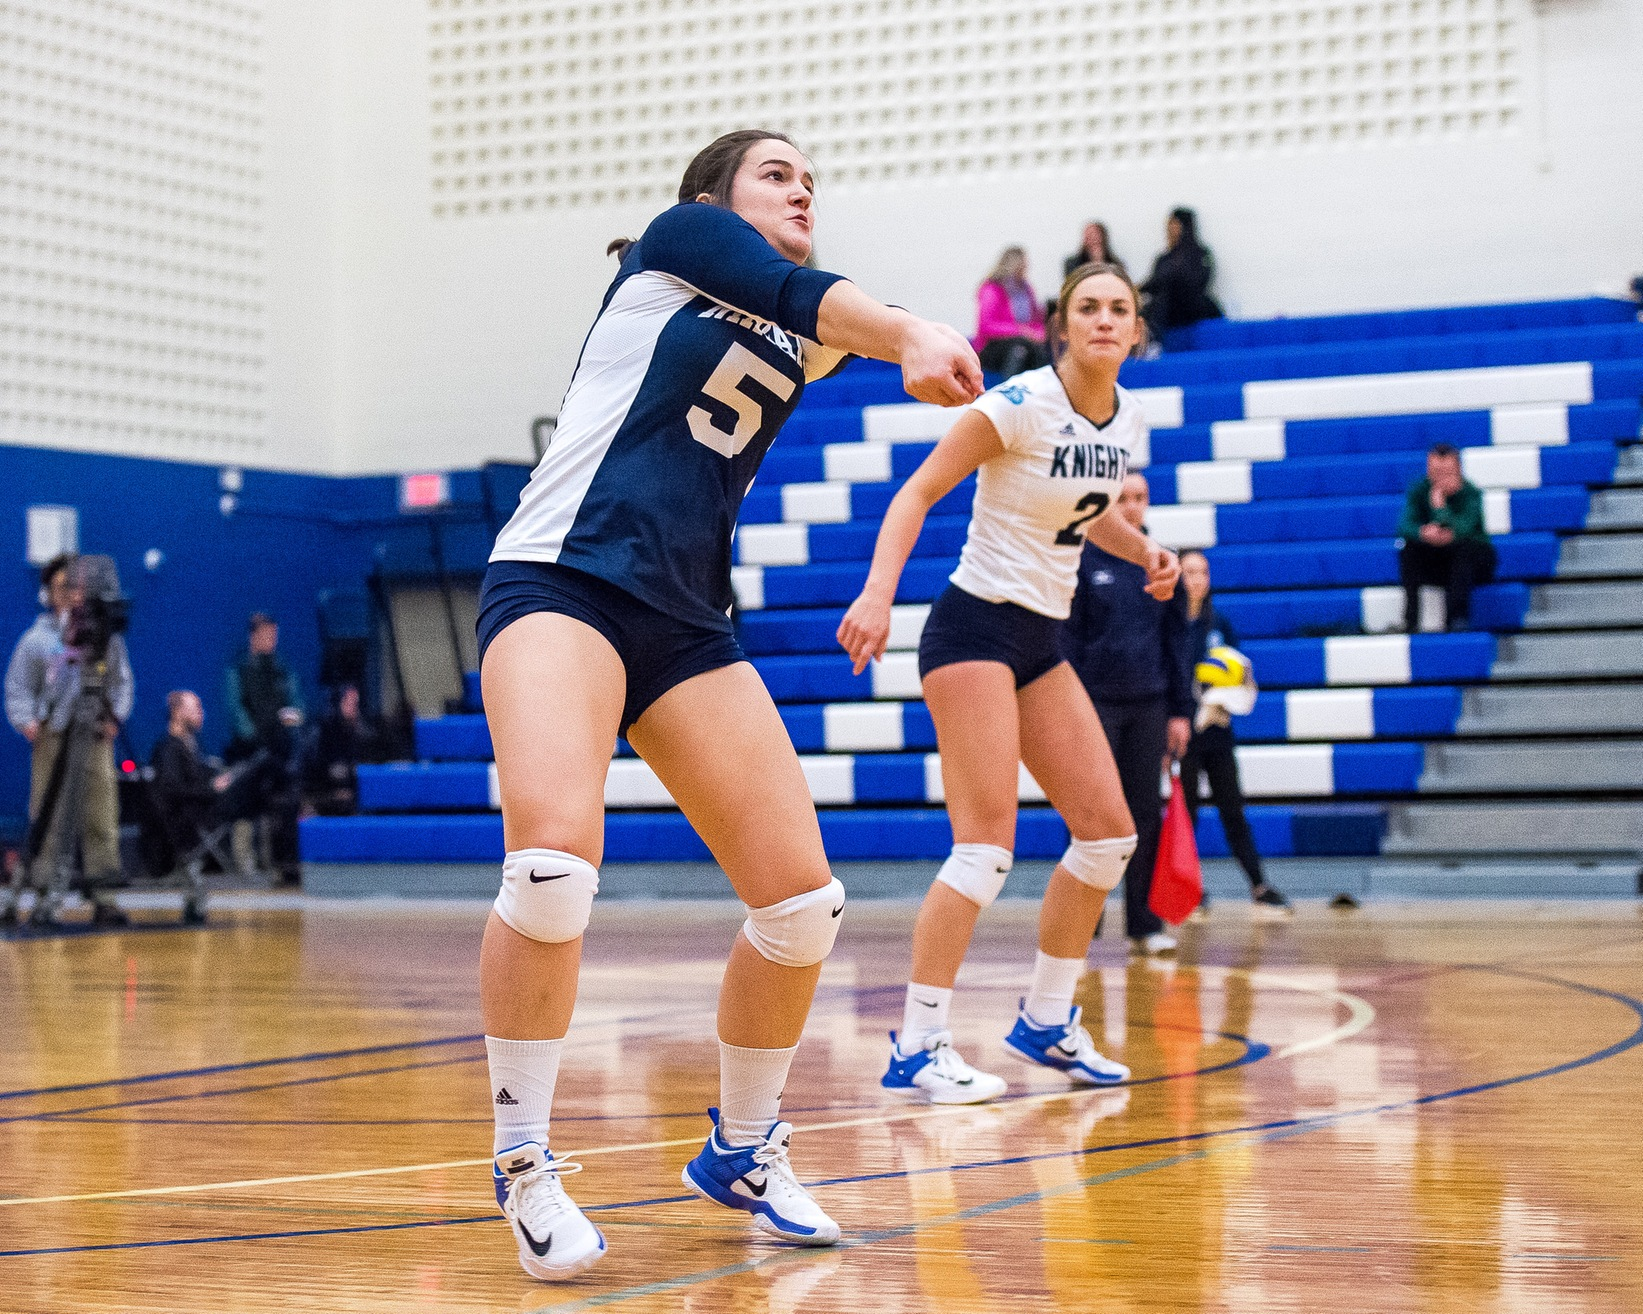 PREVIEW: Knights look for 4th consecutive victory in annual Volleyball Grad Game